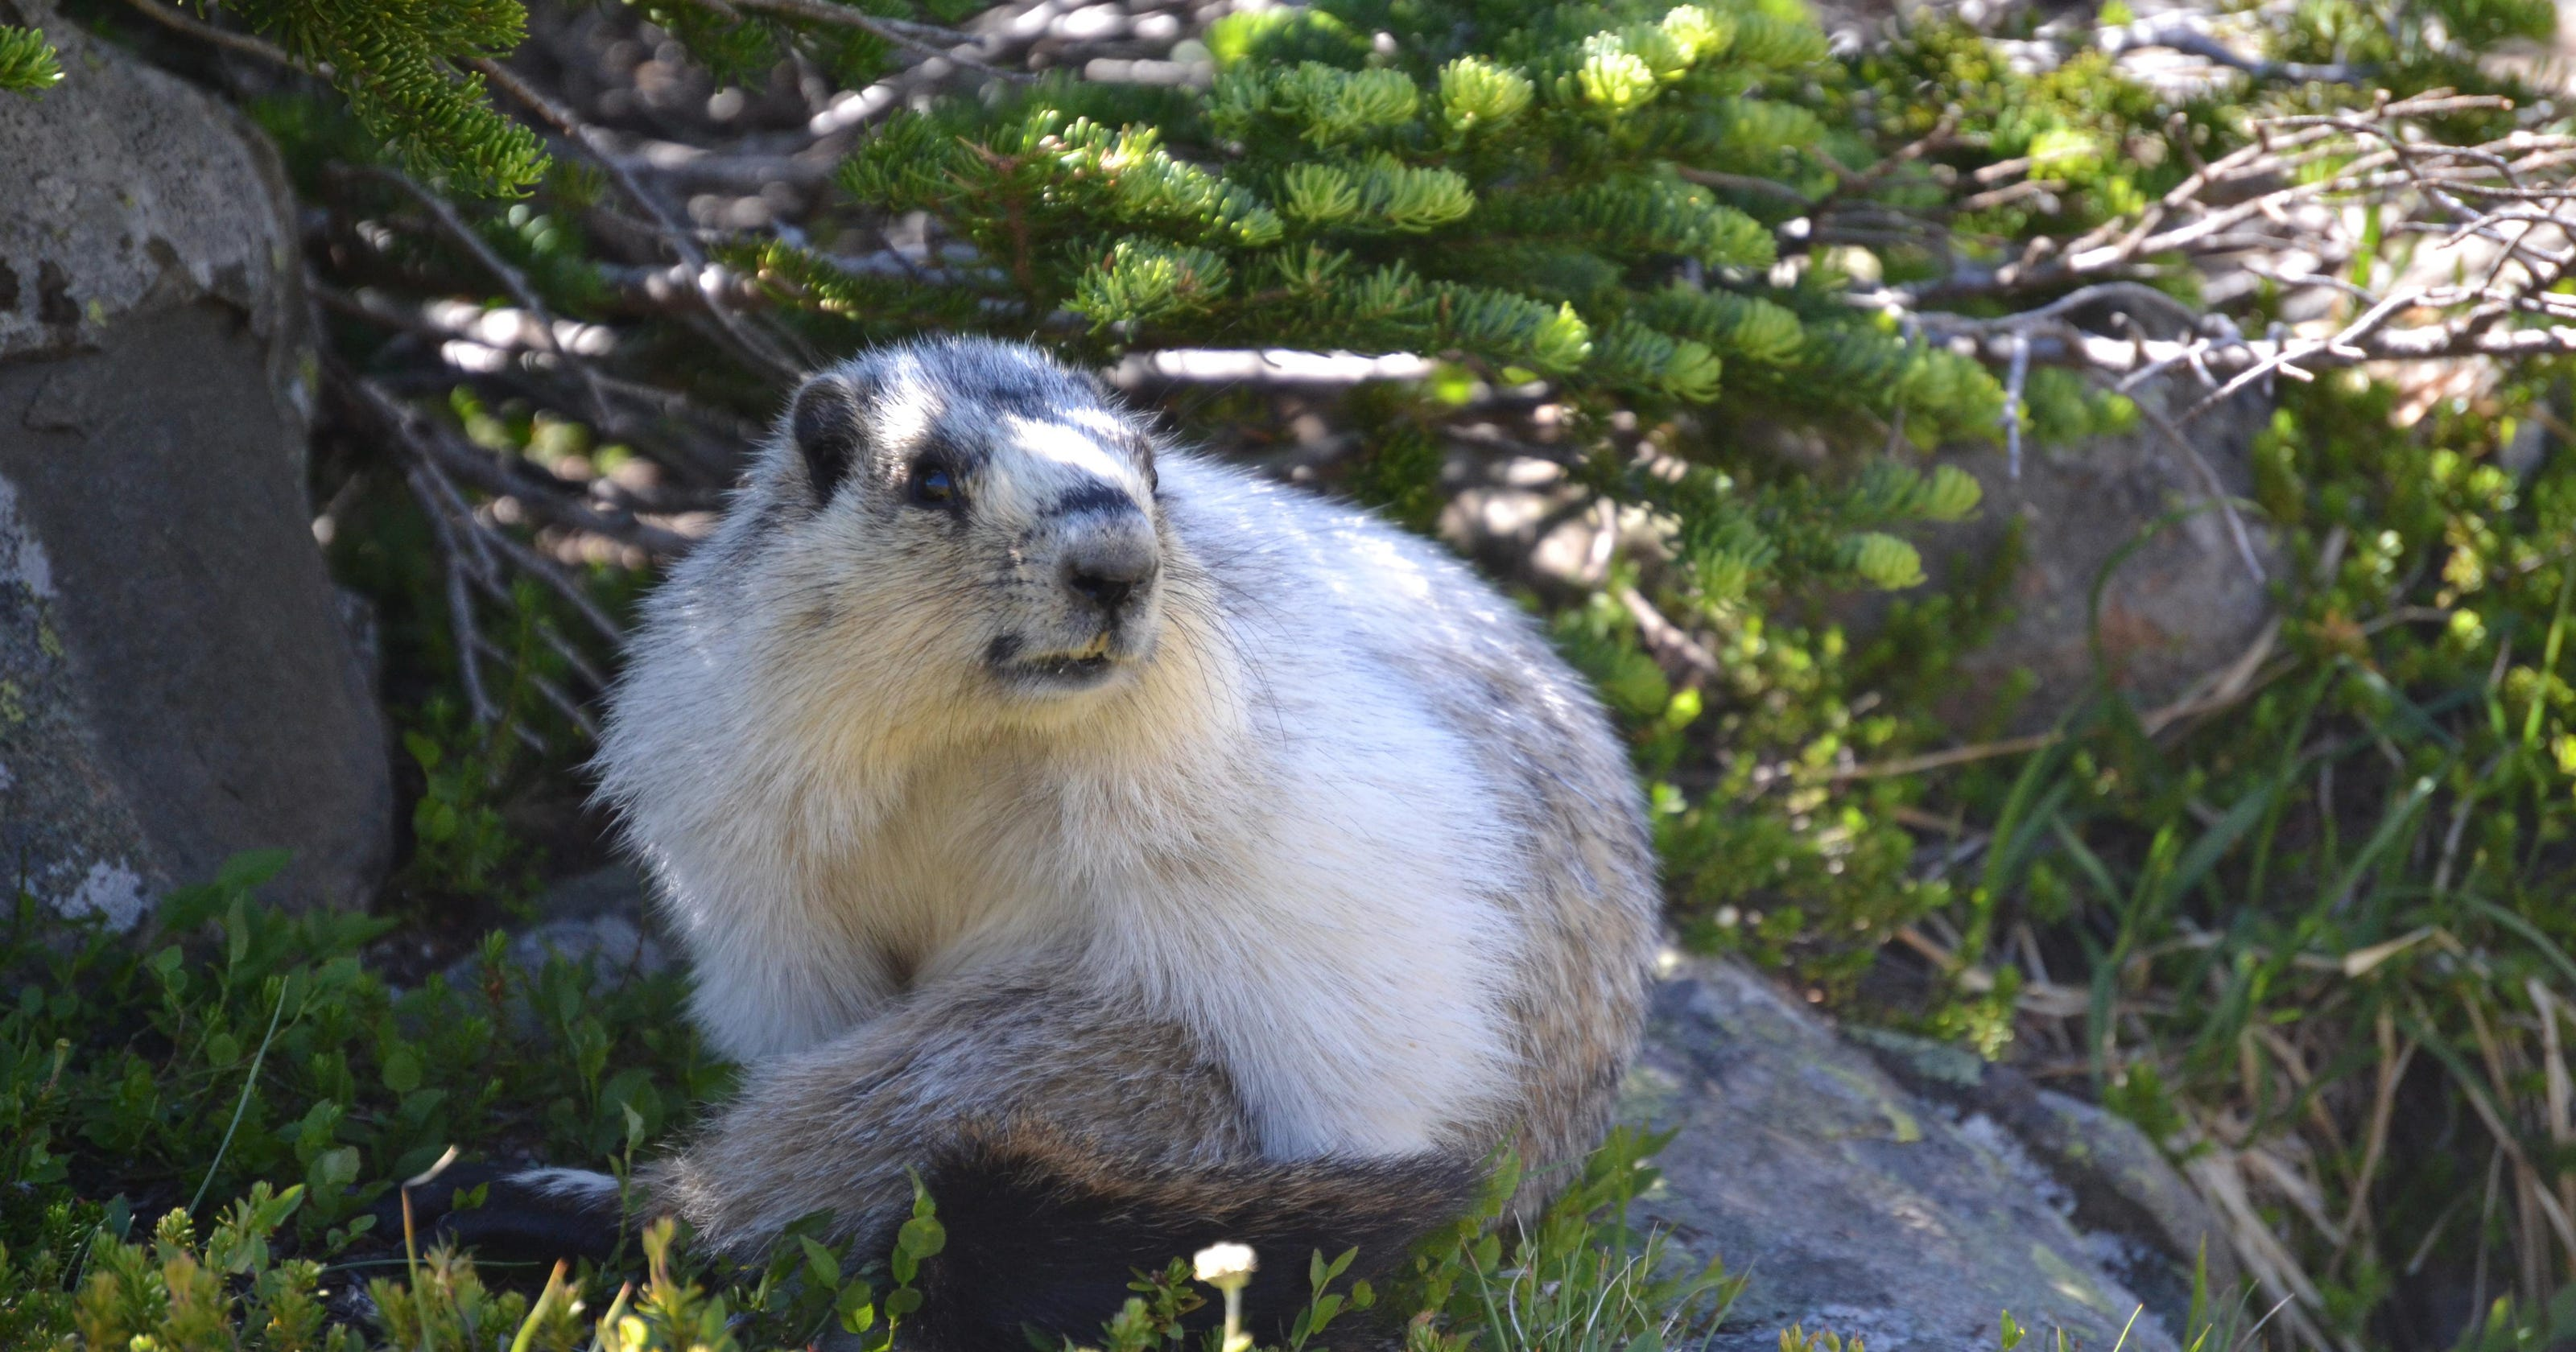 Marmot mysteries: Team goes extra mile to learn more